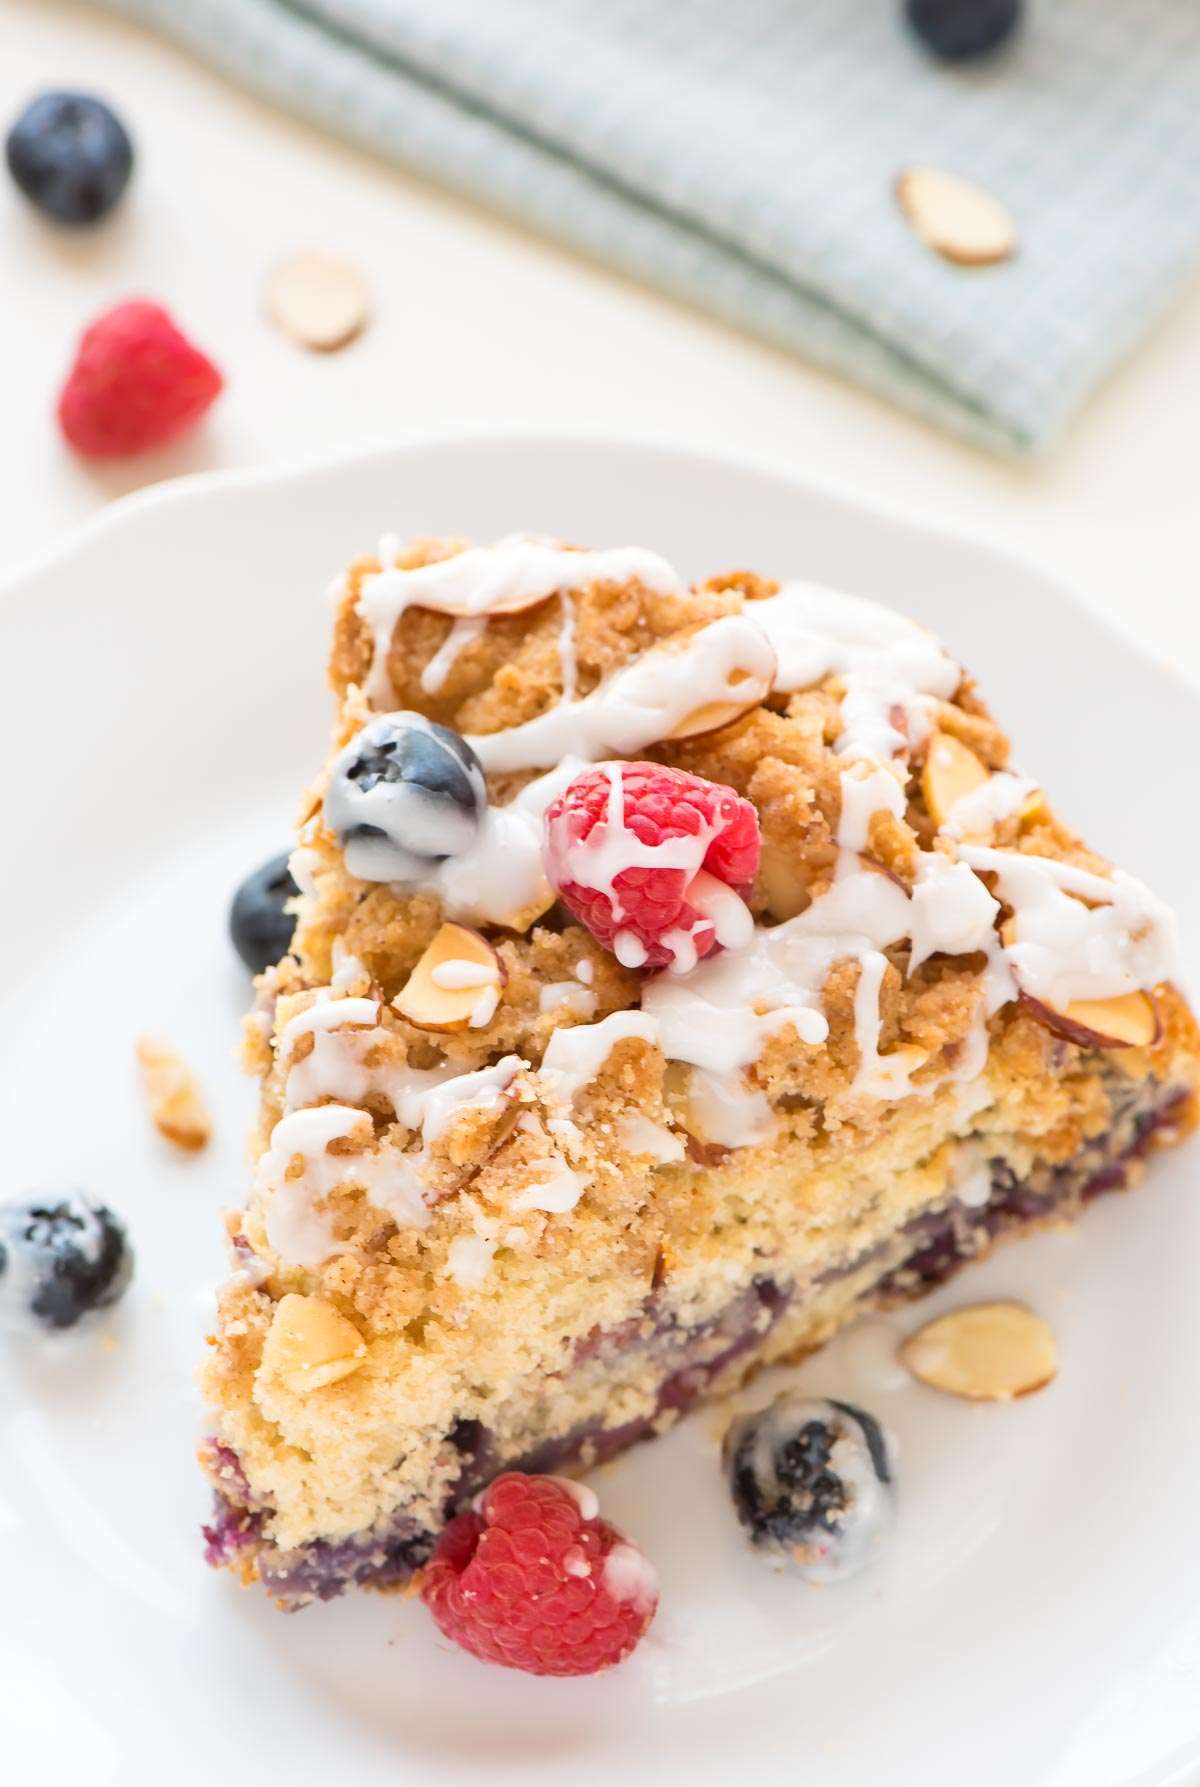 Blueberry-Crumb-Cake-recipe-with-Cinnamon-Streusel-Topping